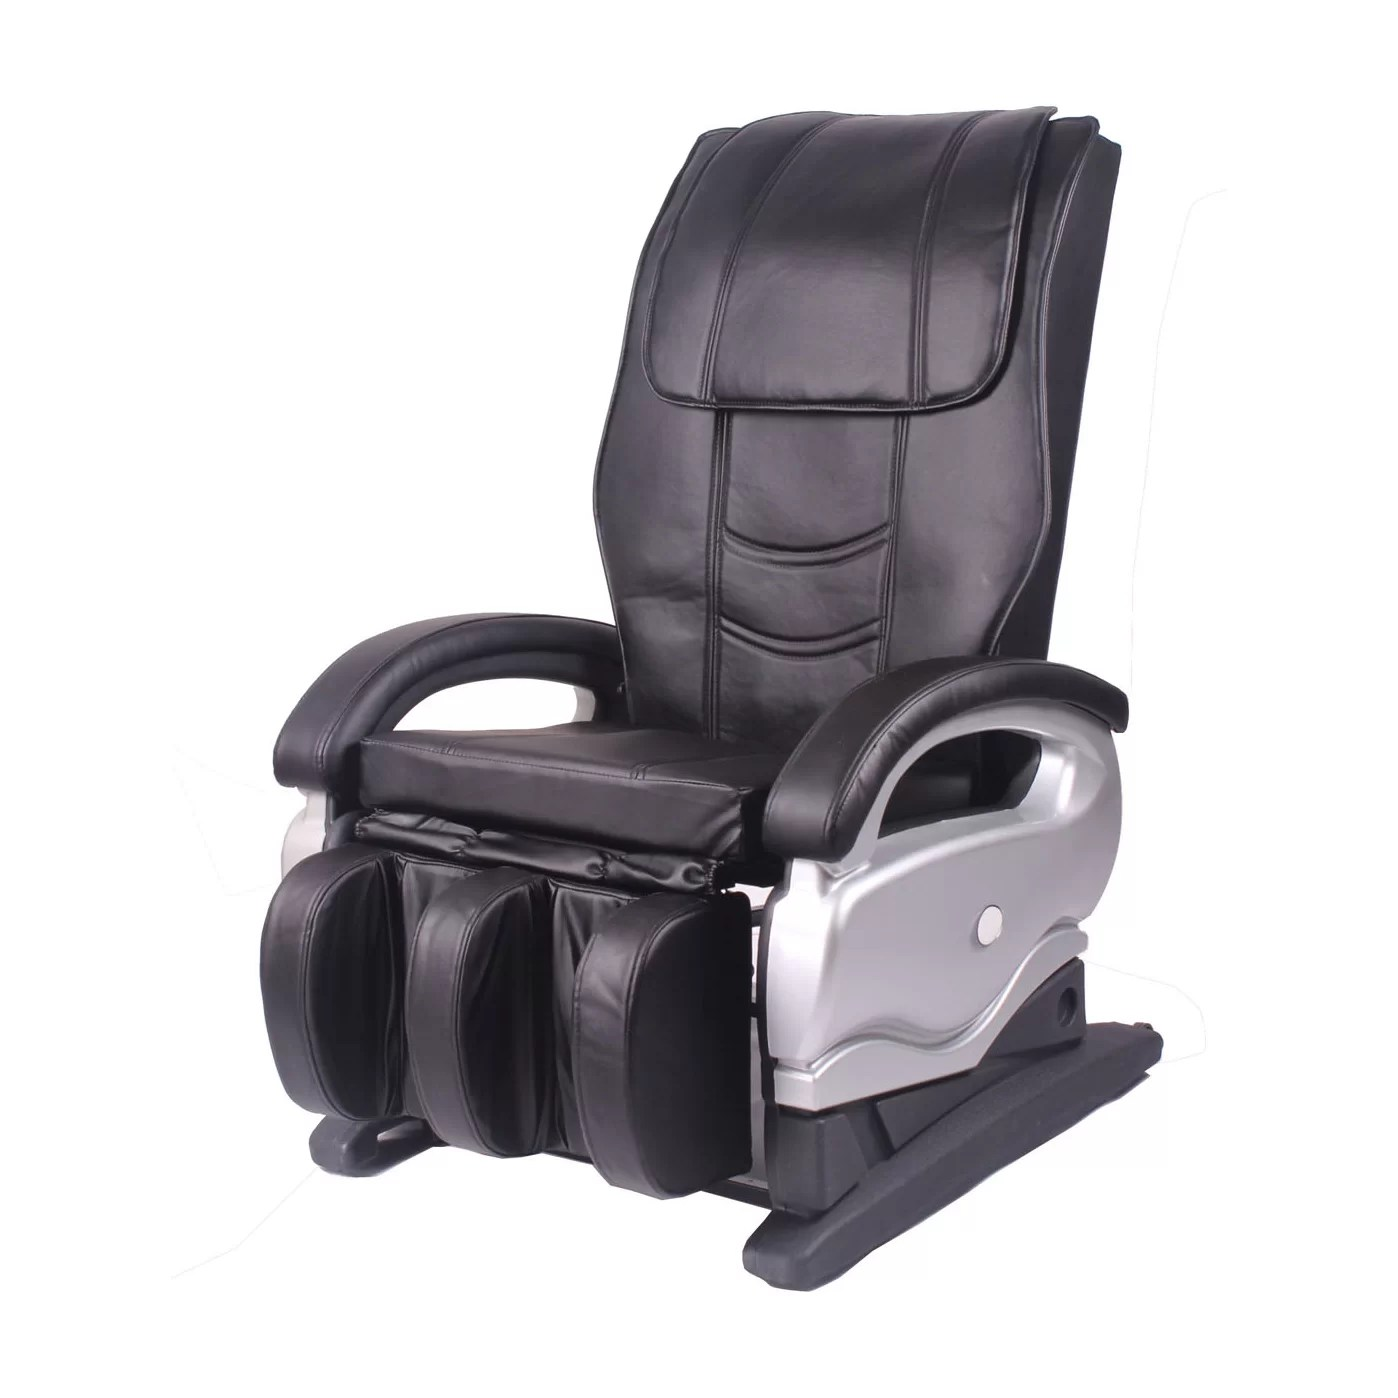 Top Rated Massage Chairs Newacme Llc Mcombo Leather Electric Reclining Massage